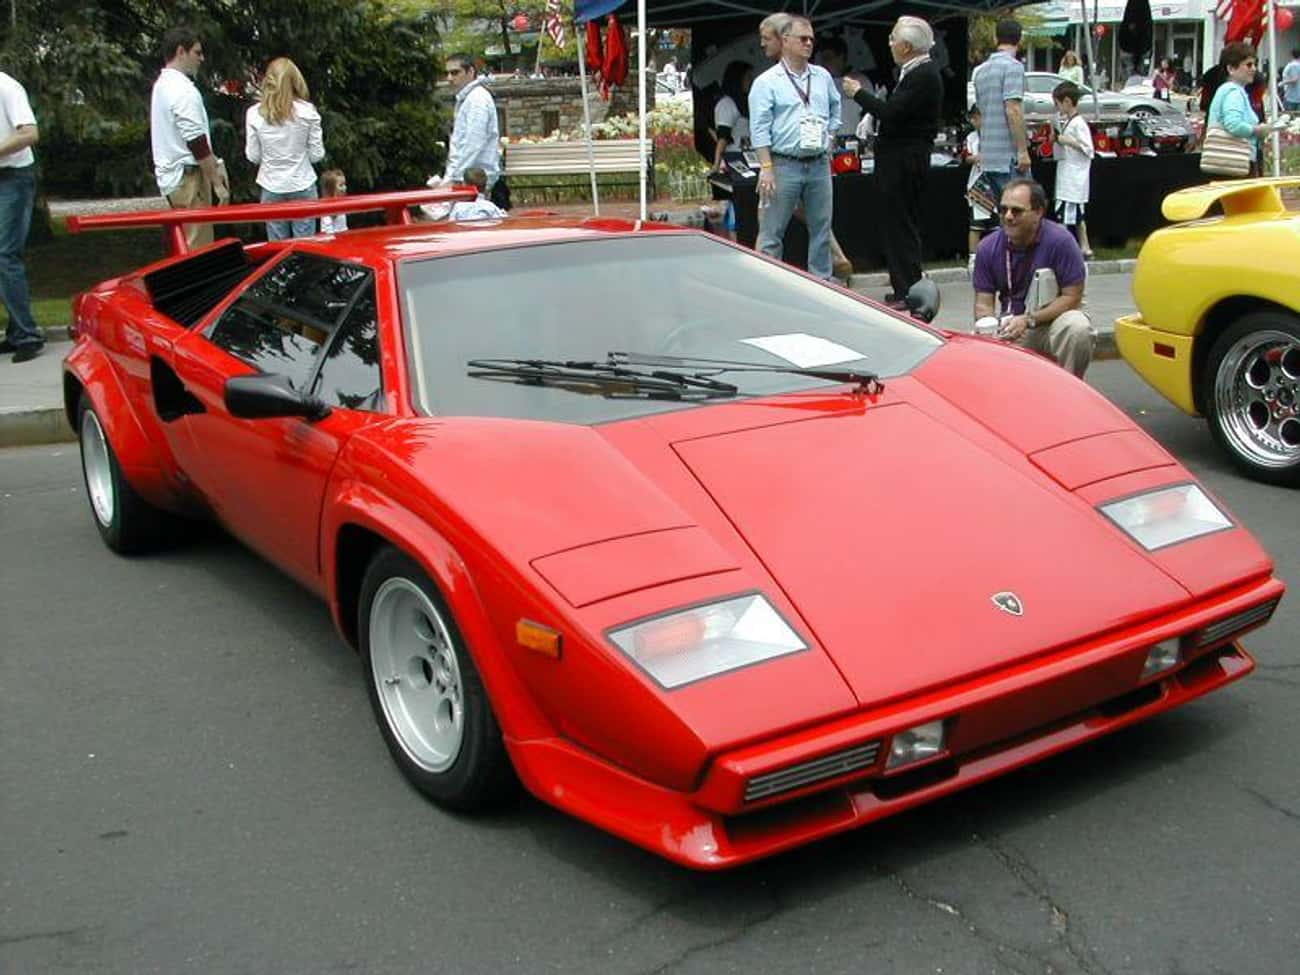 Lamborghini Countach is listed (or ranked) 4 on the list 23 Cars You Wish You'd Had as a Kid